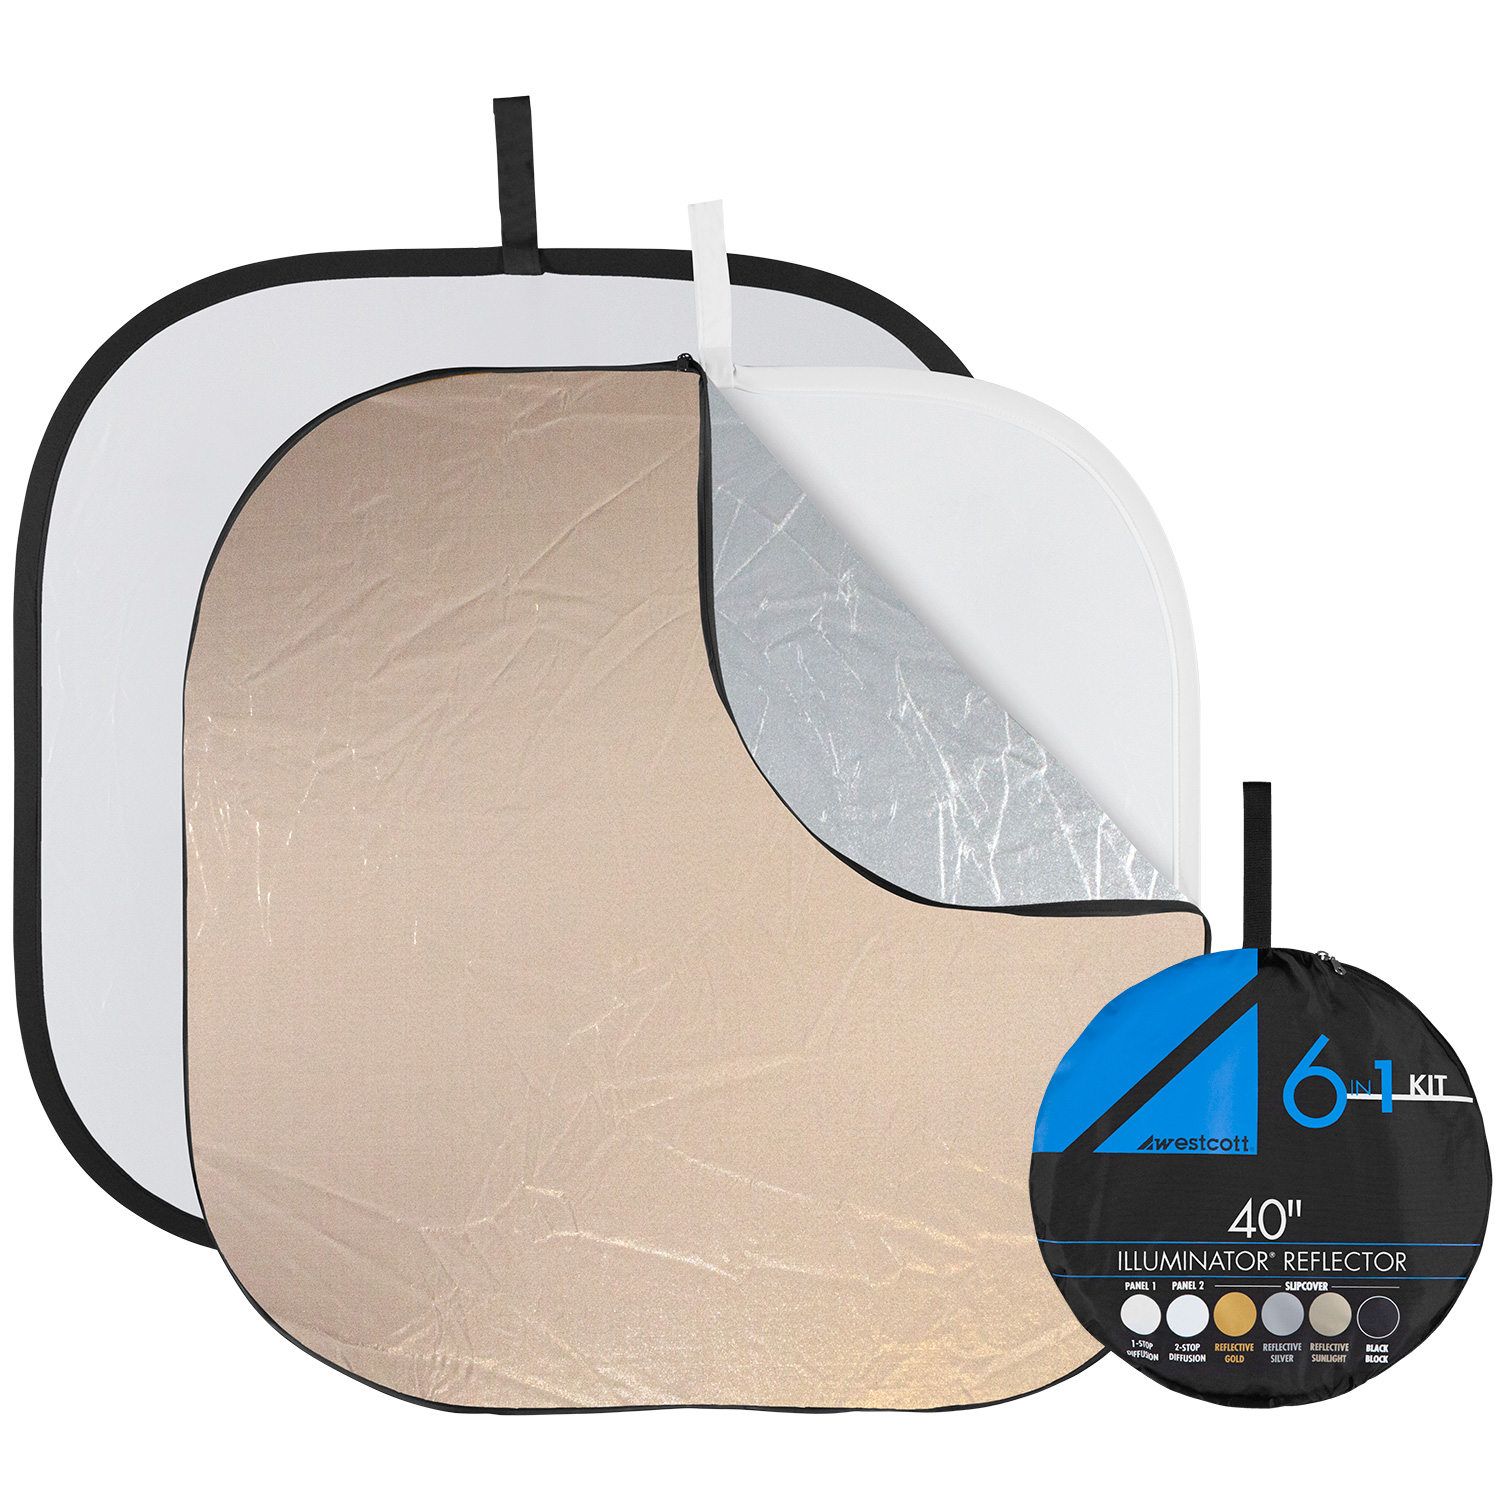 Illuminator Collapsible 6-in-1 Reflector (40-in.) with FREE Illuminator Arm